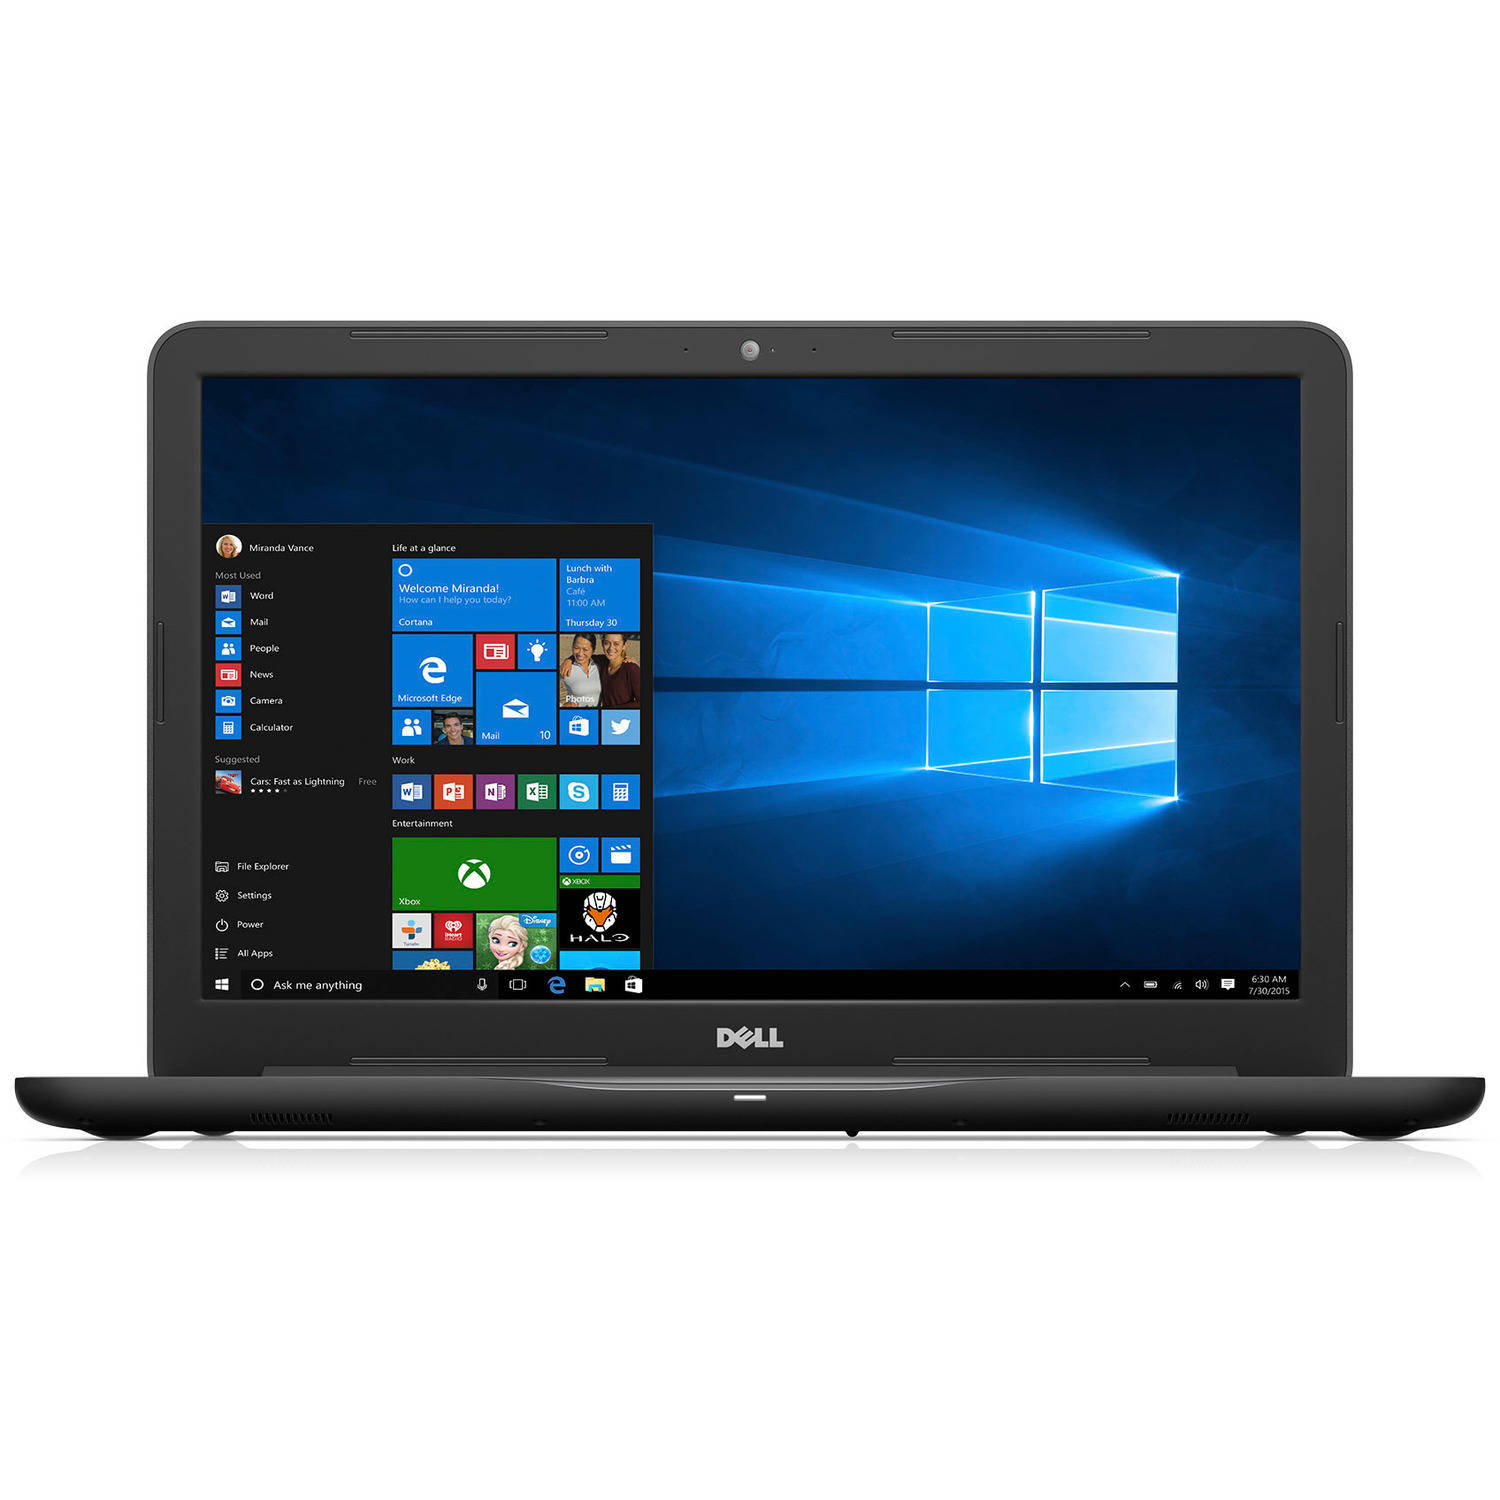 "Dell Inspiron i57656382GRY 17.3"" Laptop, Windows 10 Home, AMD FX 9800P Processor, 16GB RAM, Radeon R8 M445DX Dual Graphics, 2TB Hard Drive"